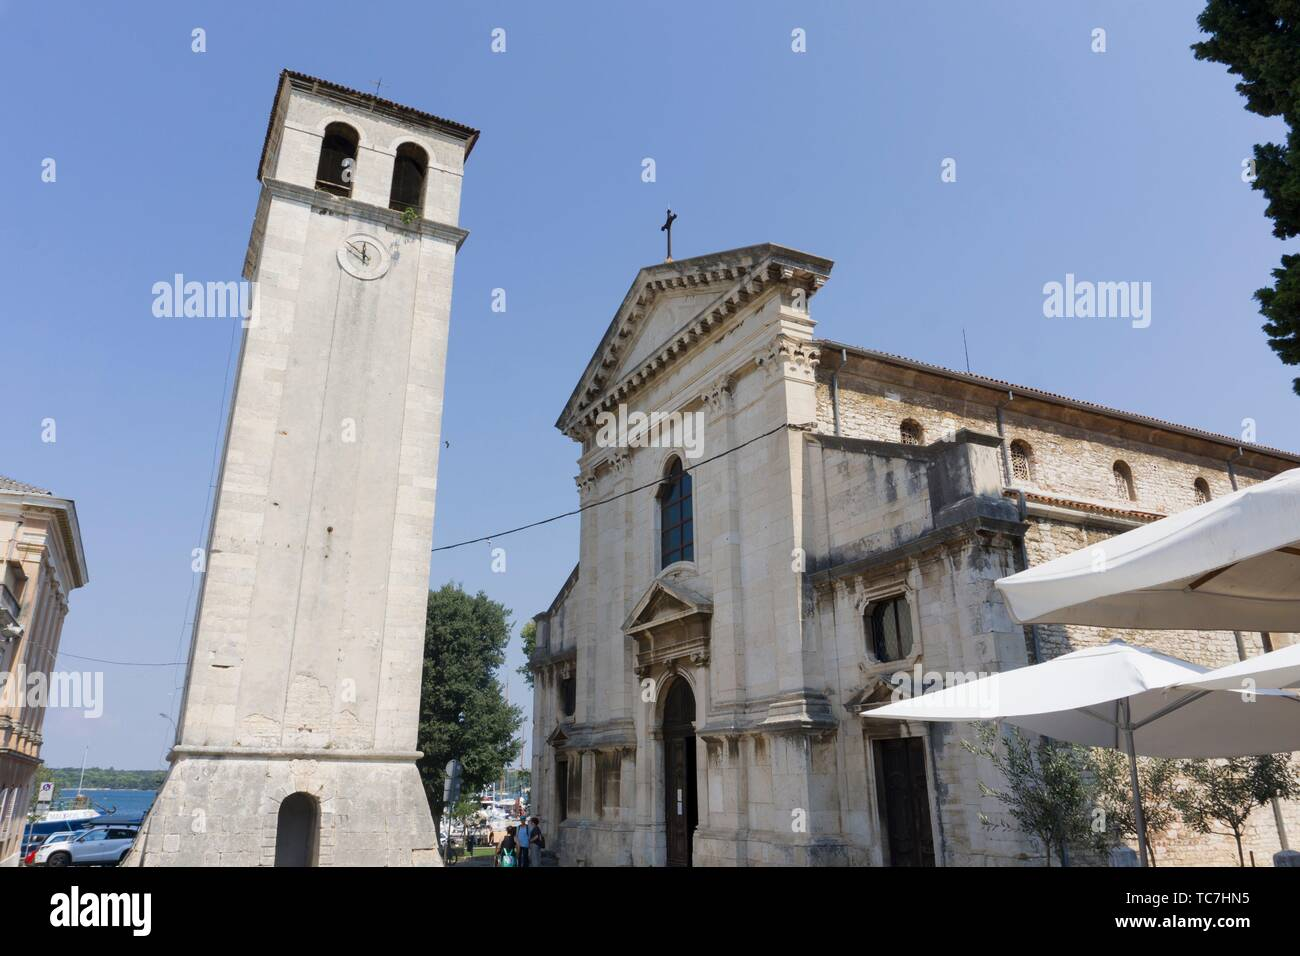 The cathedral in Pula in Istria Croatia. Stock Photo